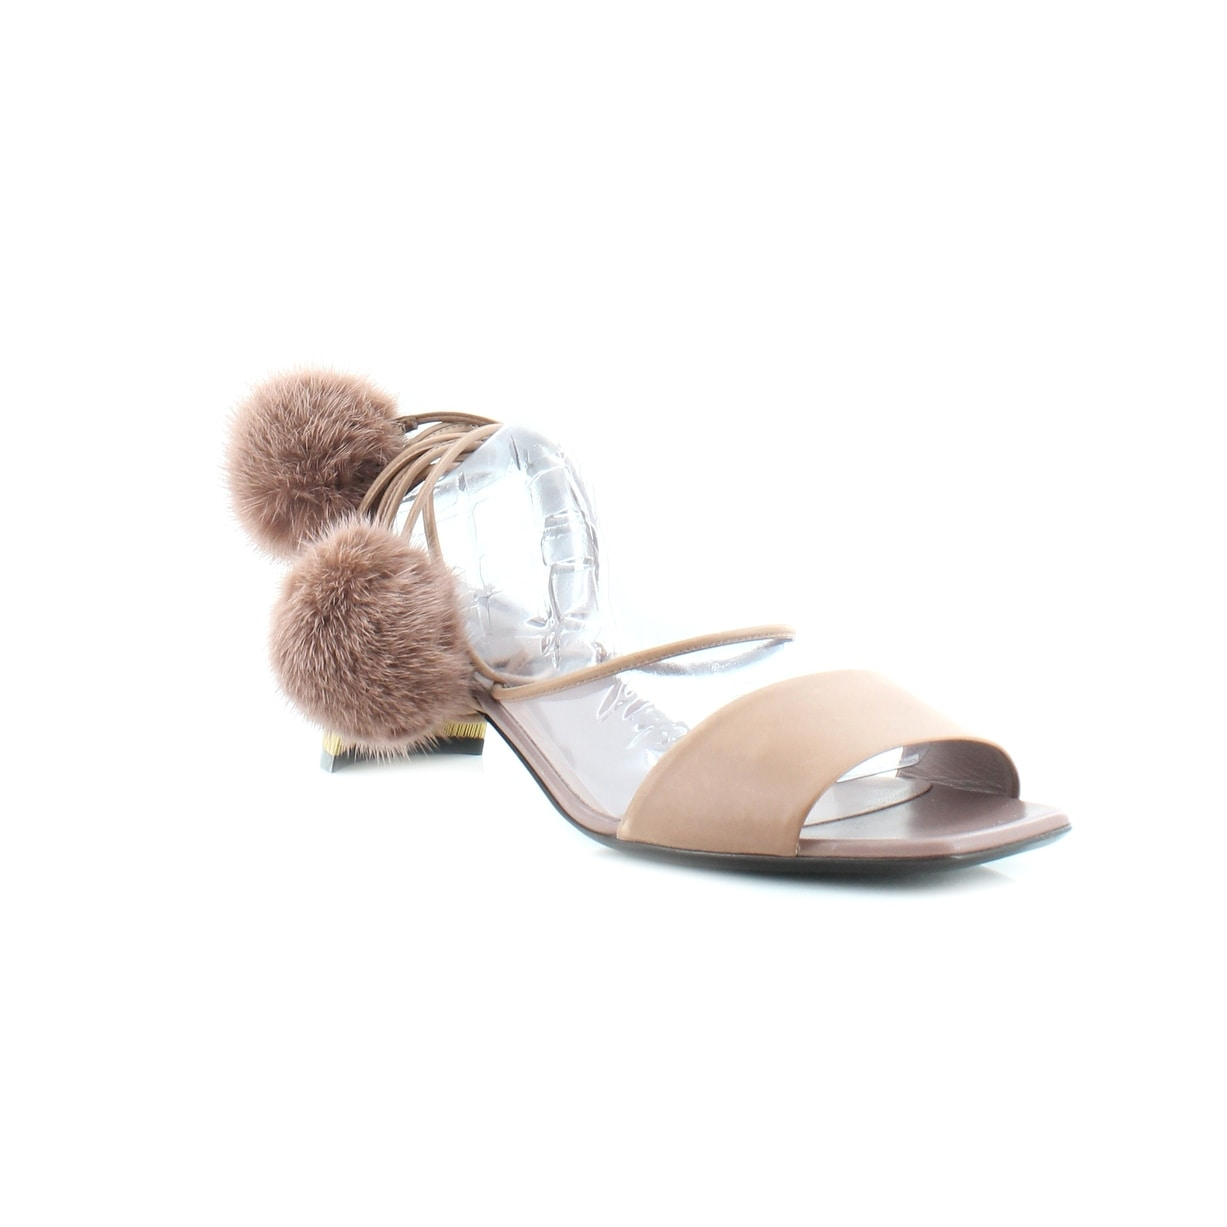 9db1c0cbae5ea7 Shop Gucci Betis Glamour Women s Sandals Light Mauve - 9 - Free Shipping  Today - Overstock - 20098766